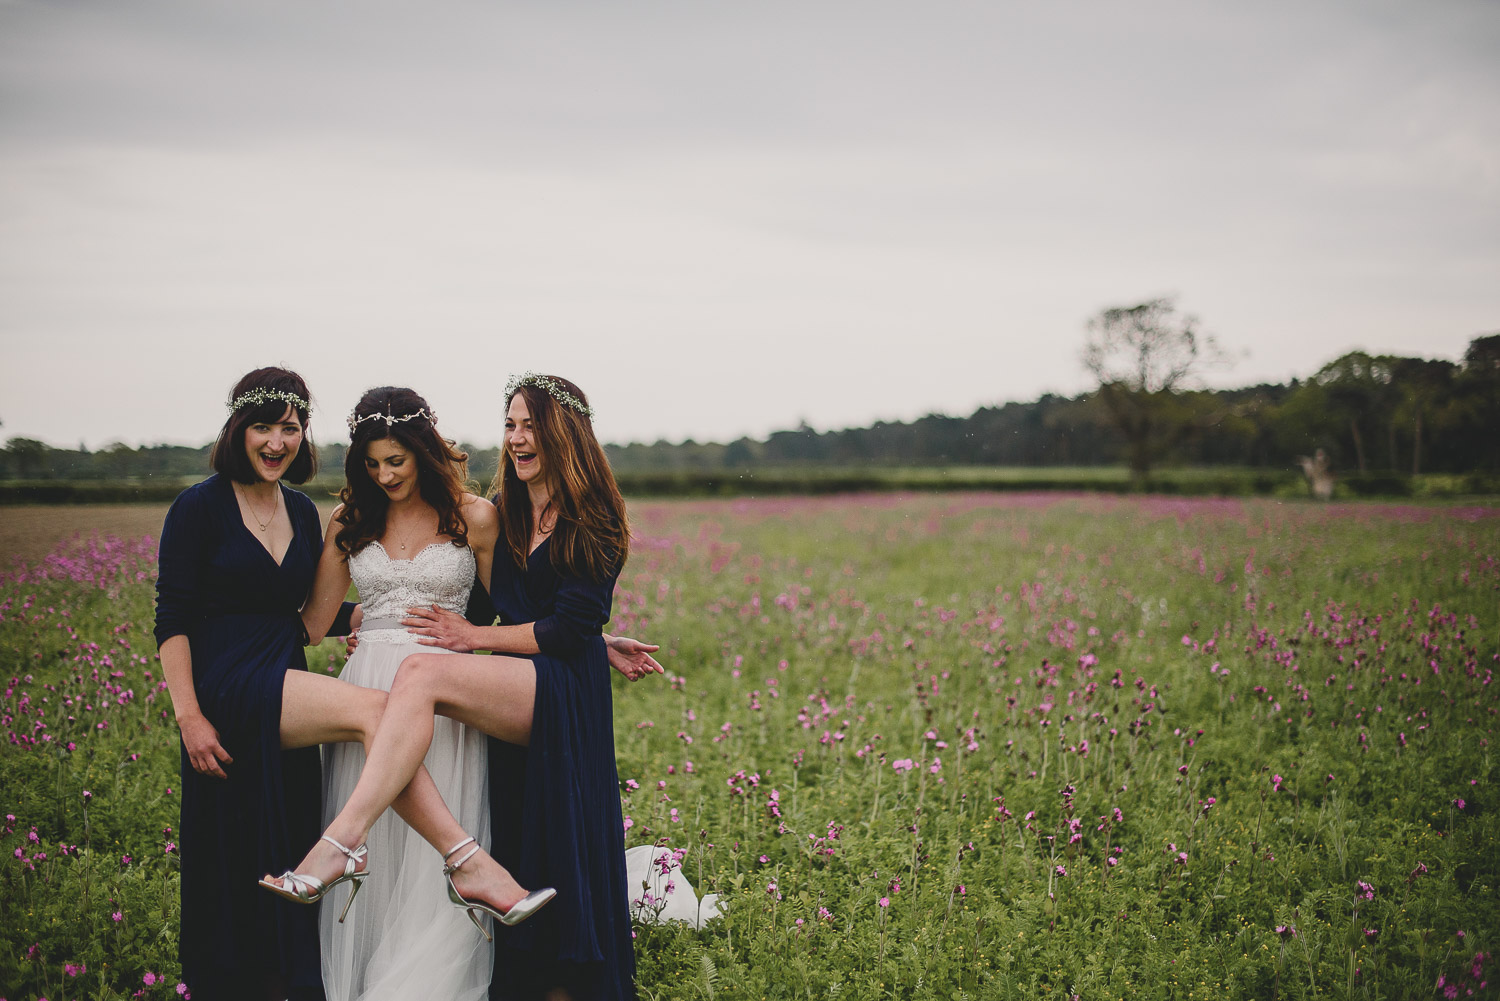 alternative suffolk wedding photographer georgia rachael